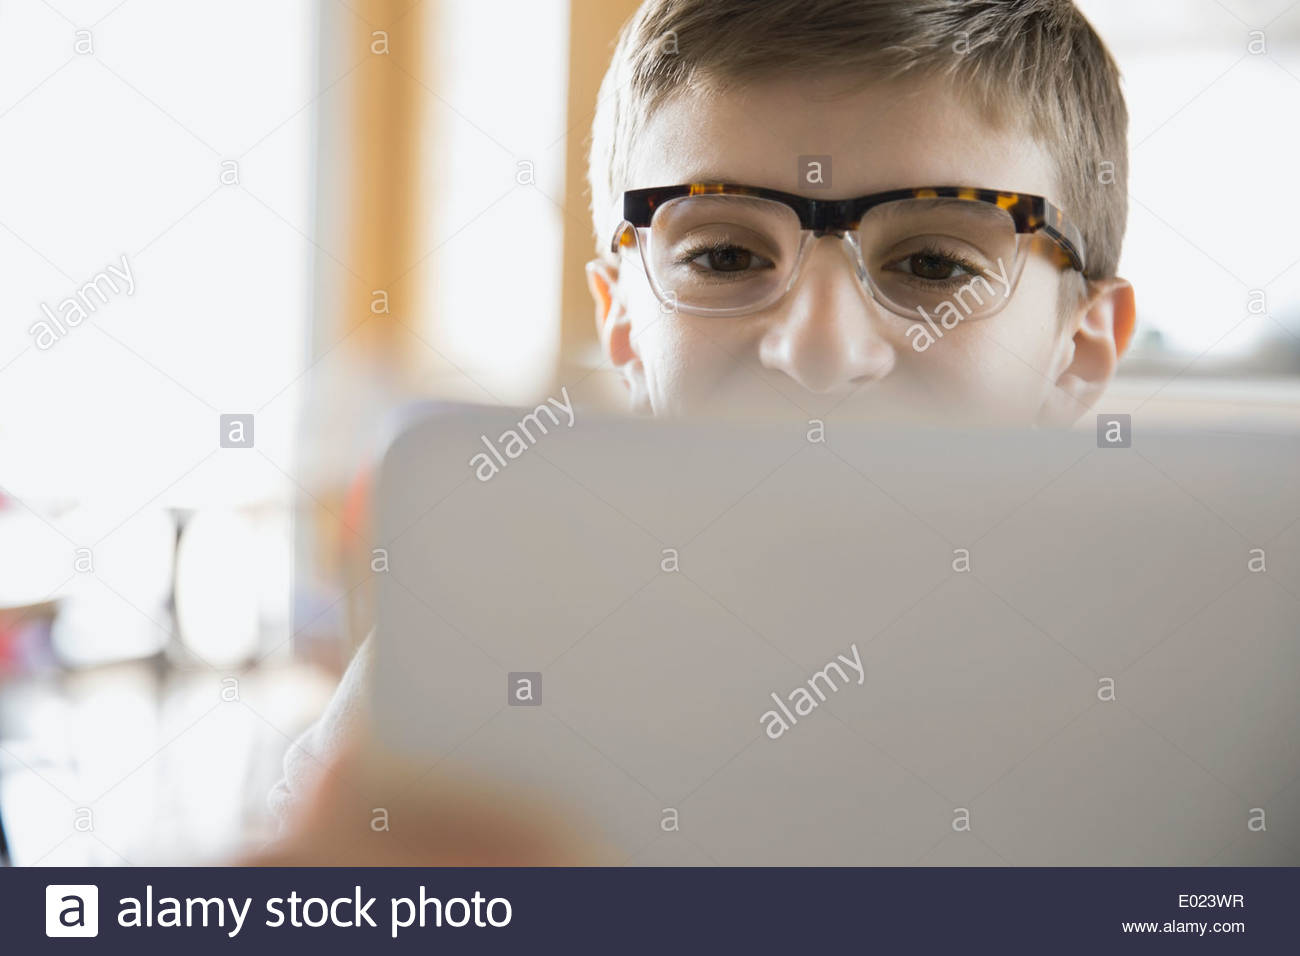 Close up of school boy using laptop in classroom Photo Stock